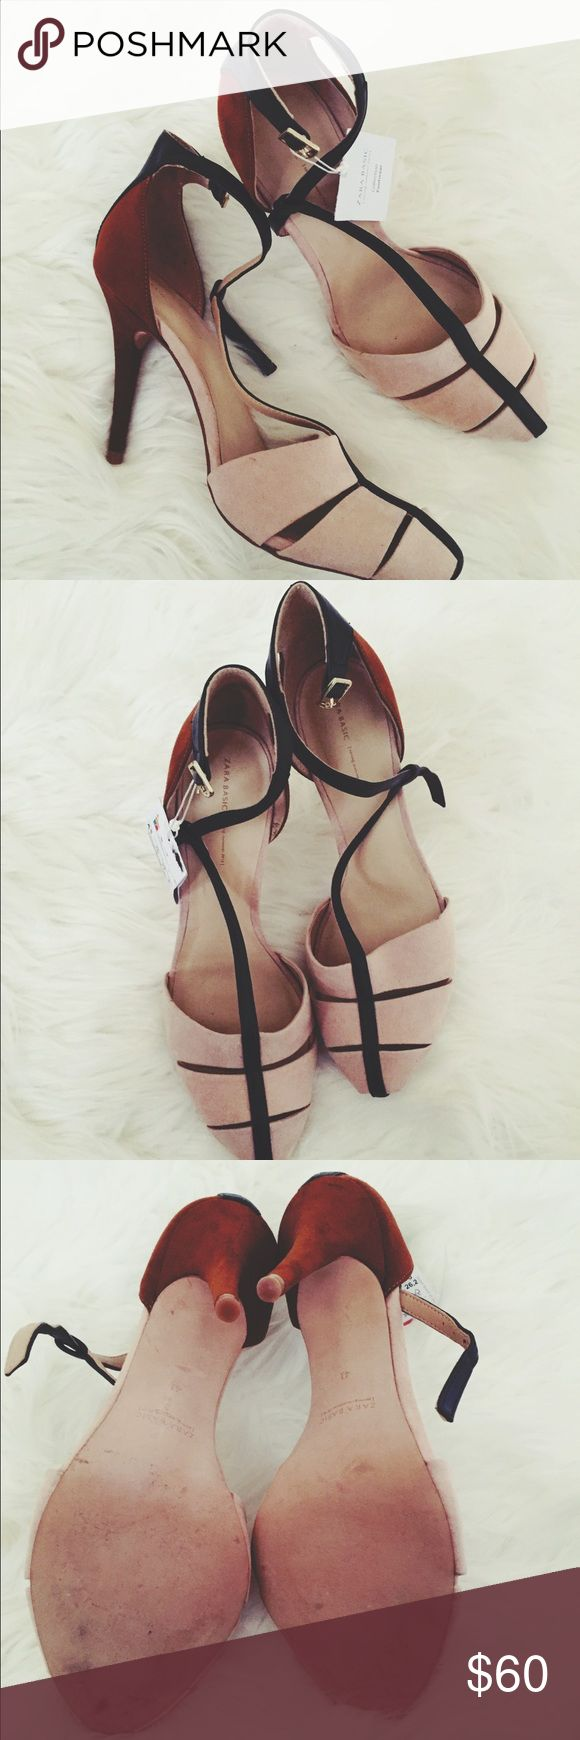 ||ZARA|| Heels So stylish and on trend, these heels are the perfect addition to any wardrobe. Purchased in the UK. Never worn. Tried on only. No trades. Open to offers. Zara Shoes